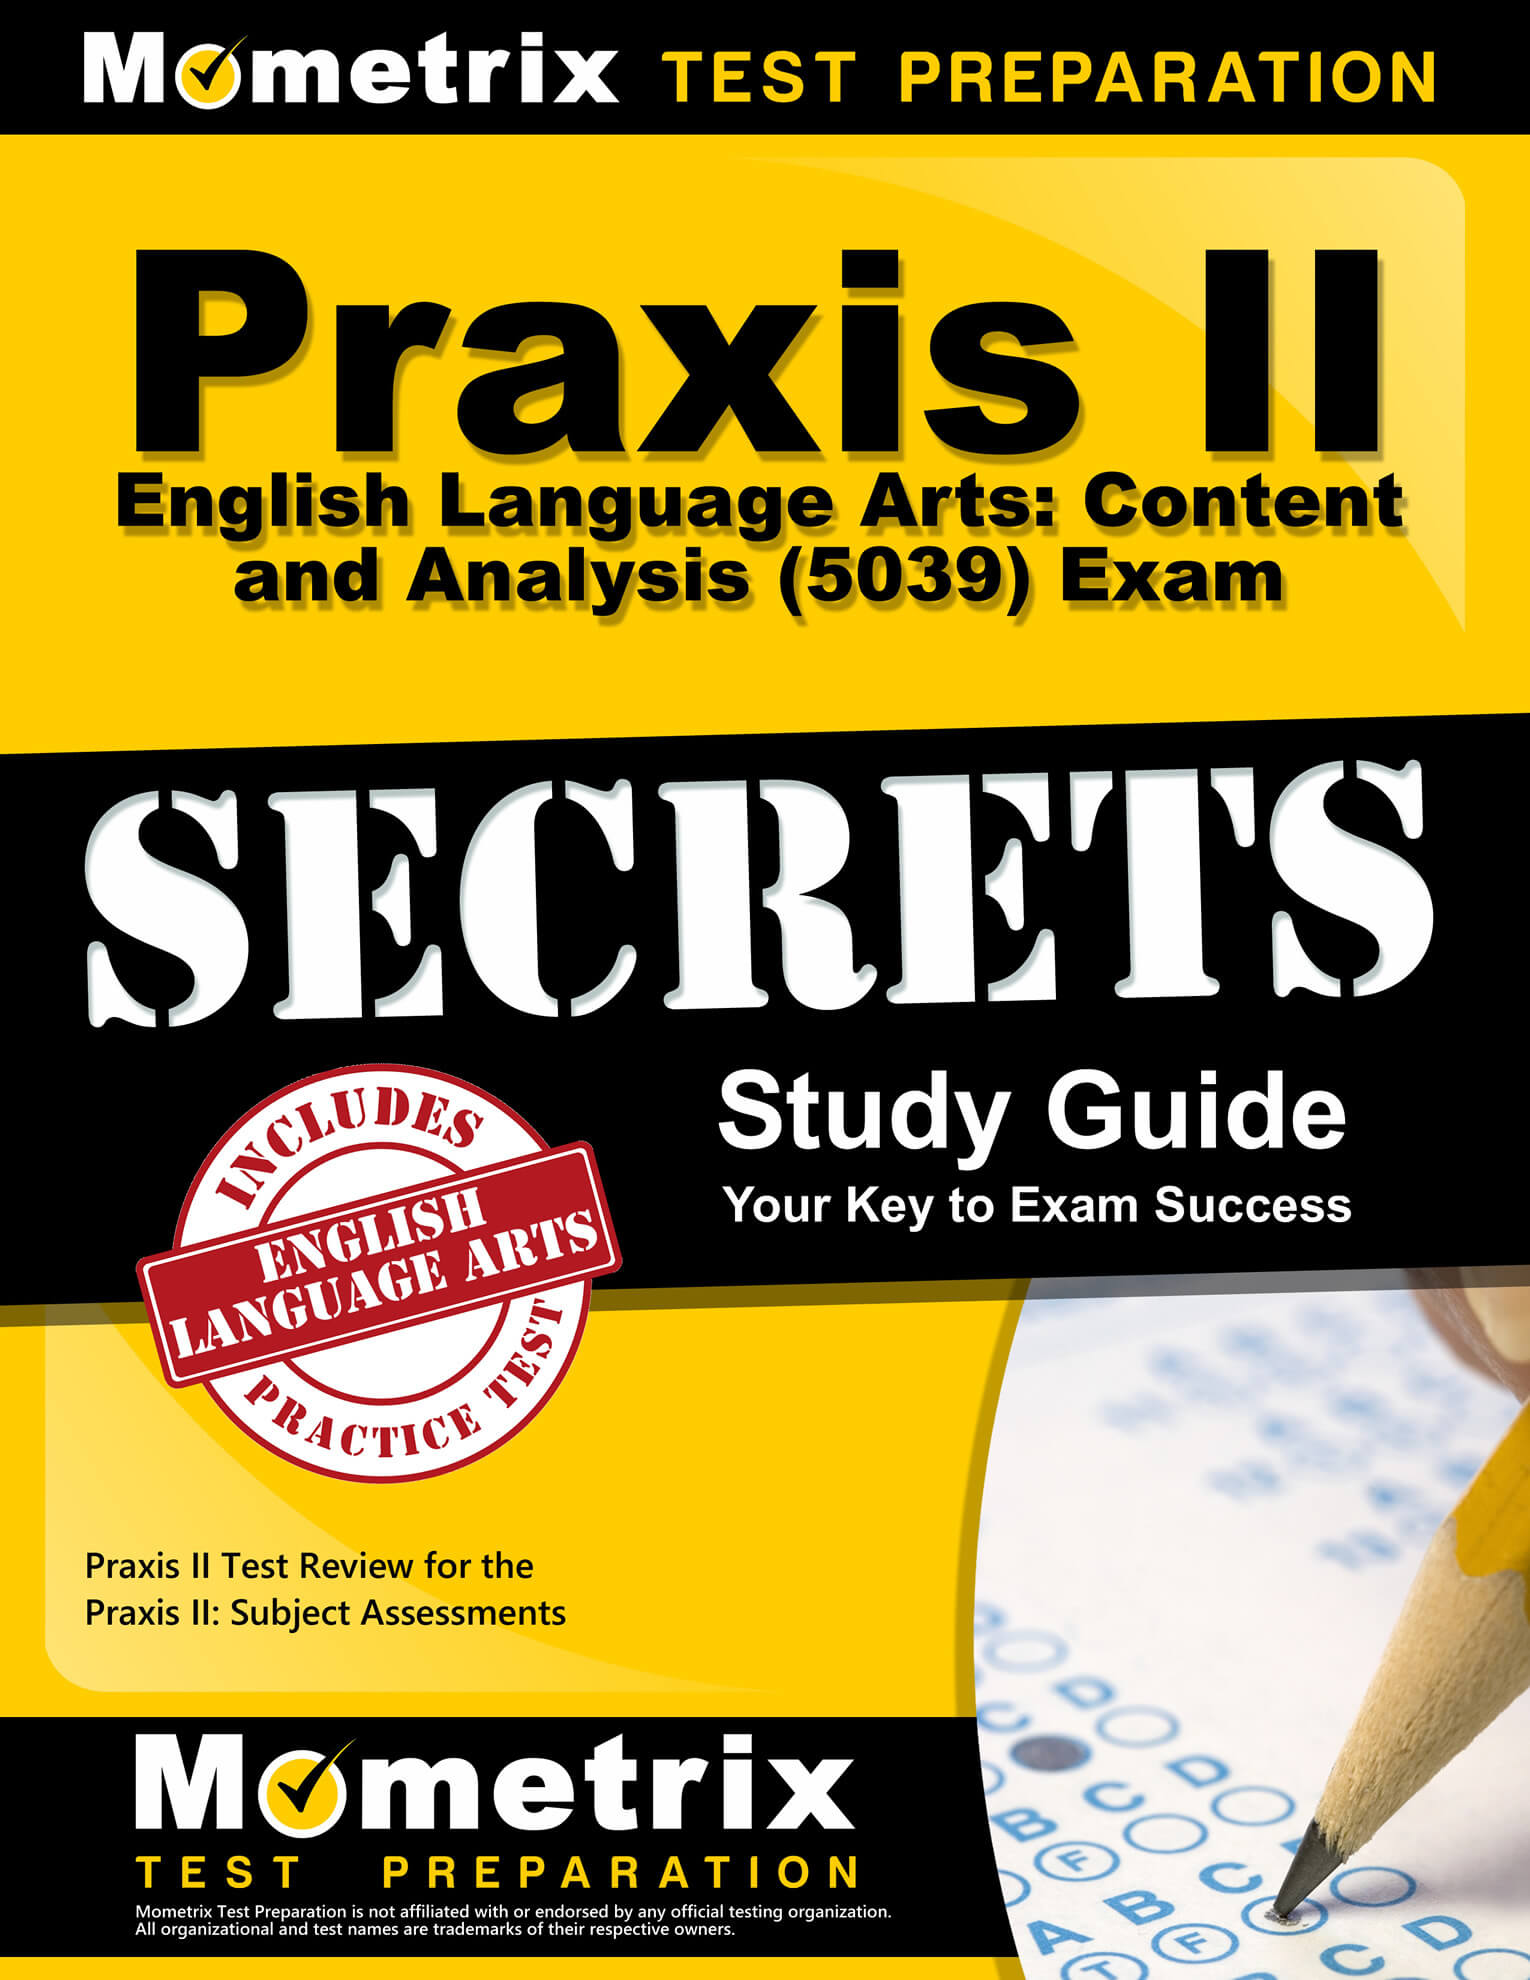 Praxis II English Language Arts: Content and Analysis Study Guide